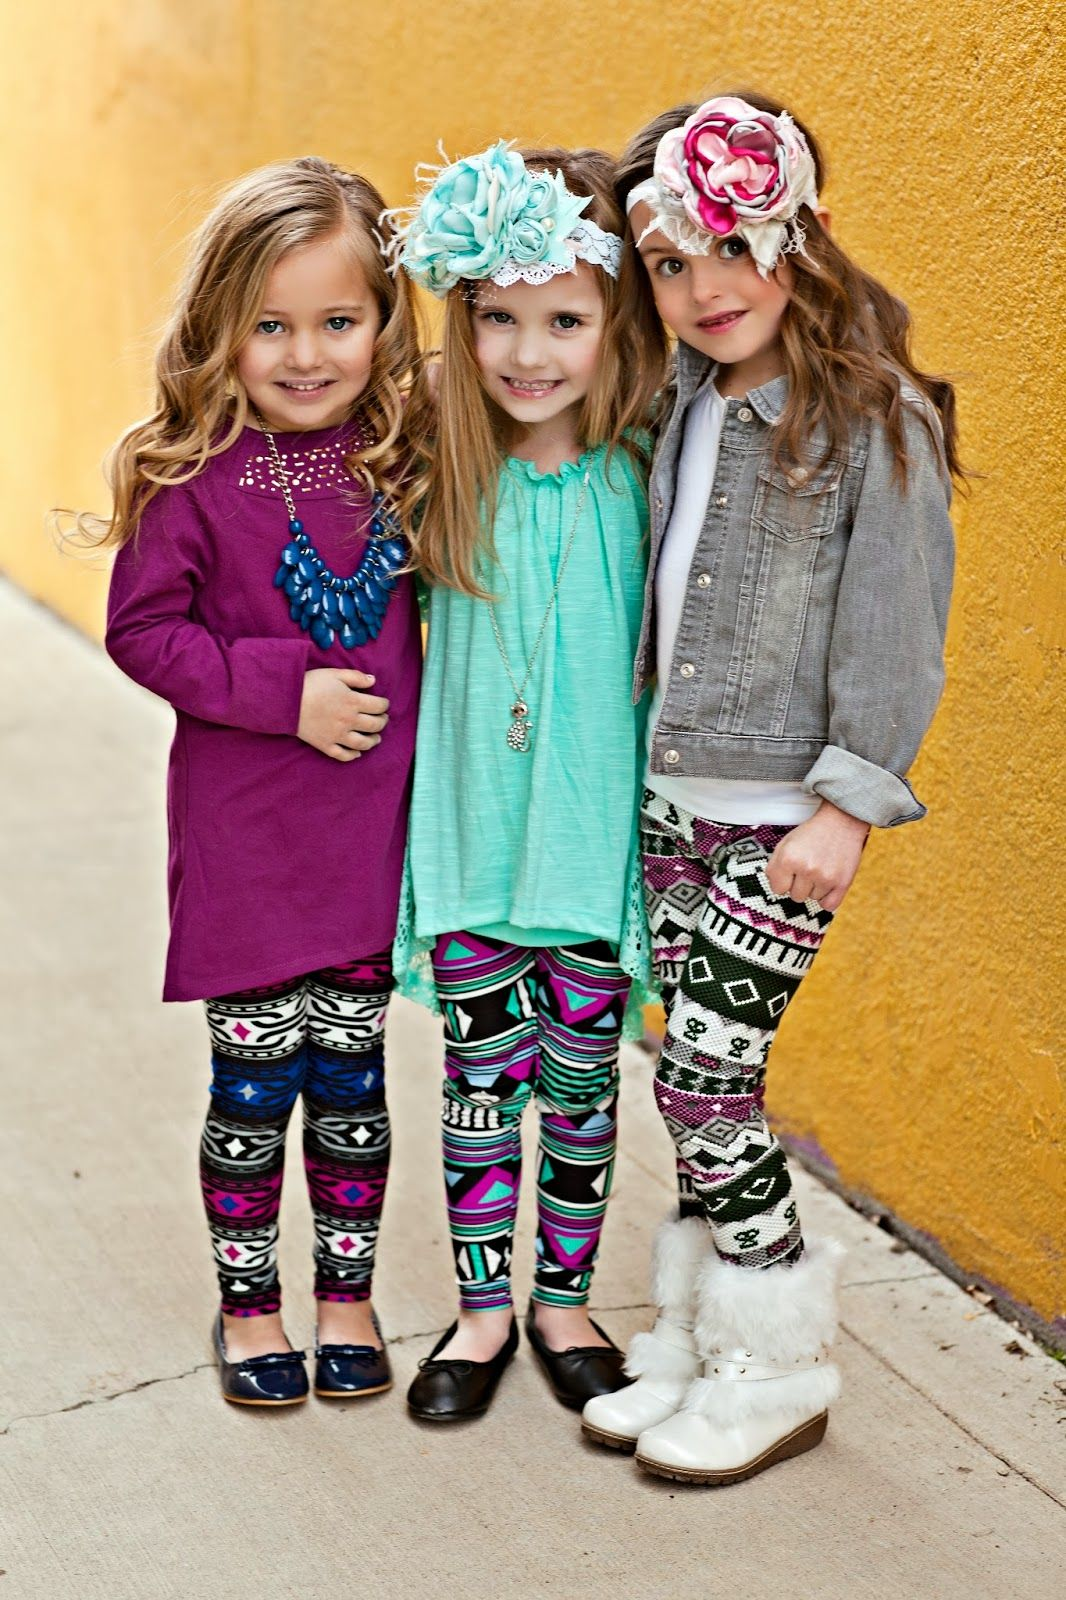 76b185e9e9a5 little leggings! The makeup on these girls are NOT ok. The outfits ...